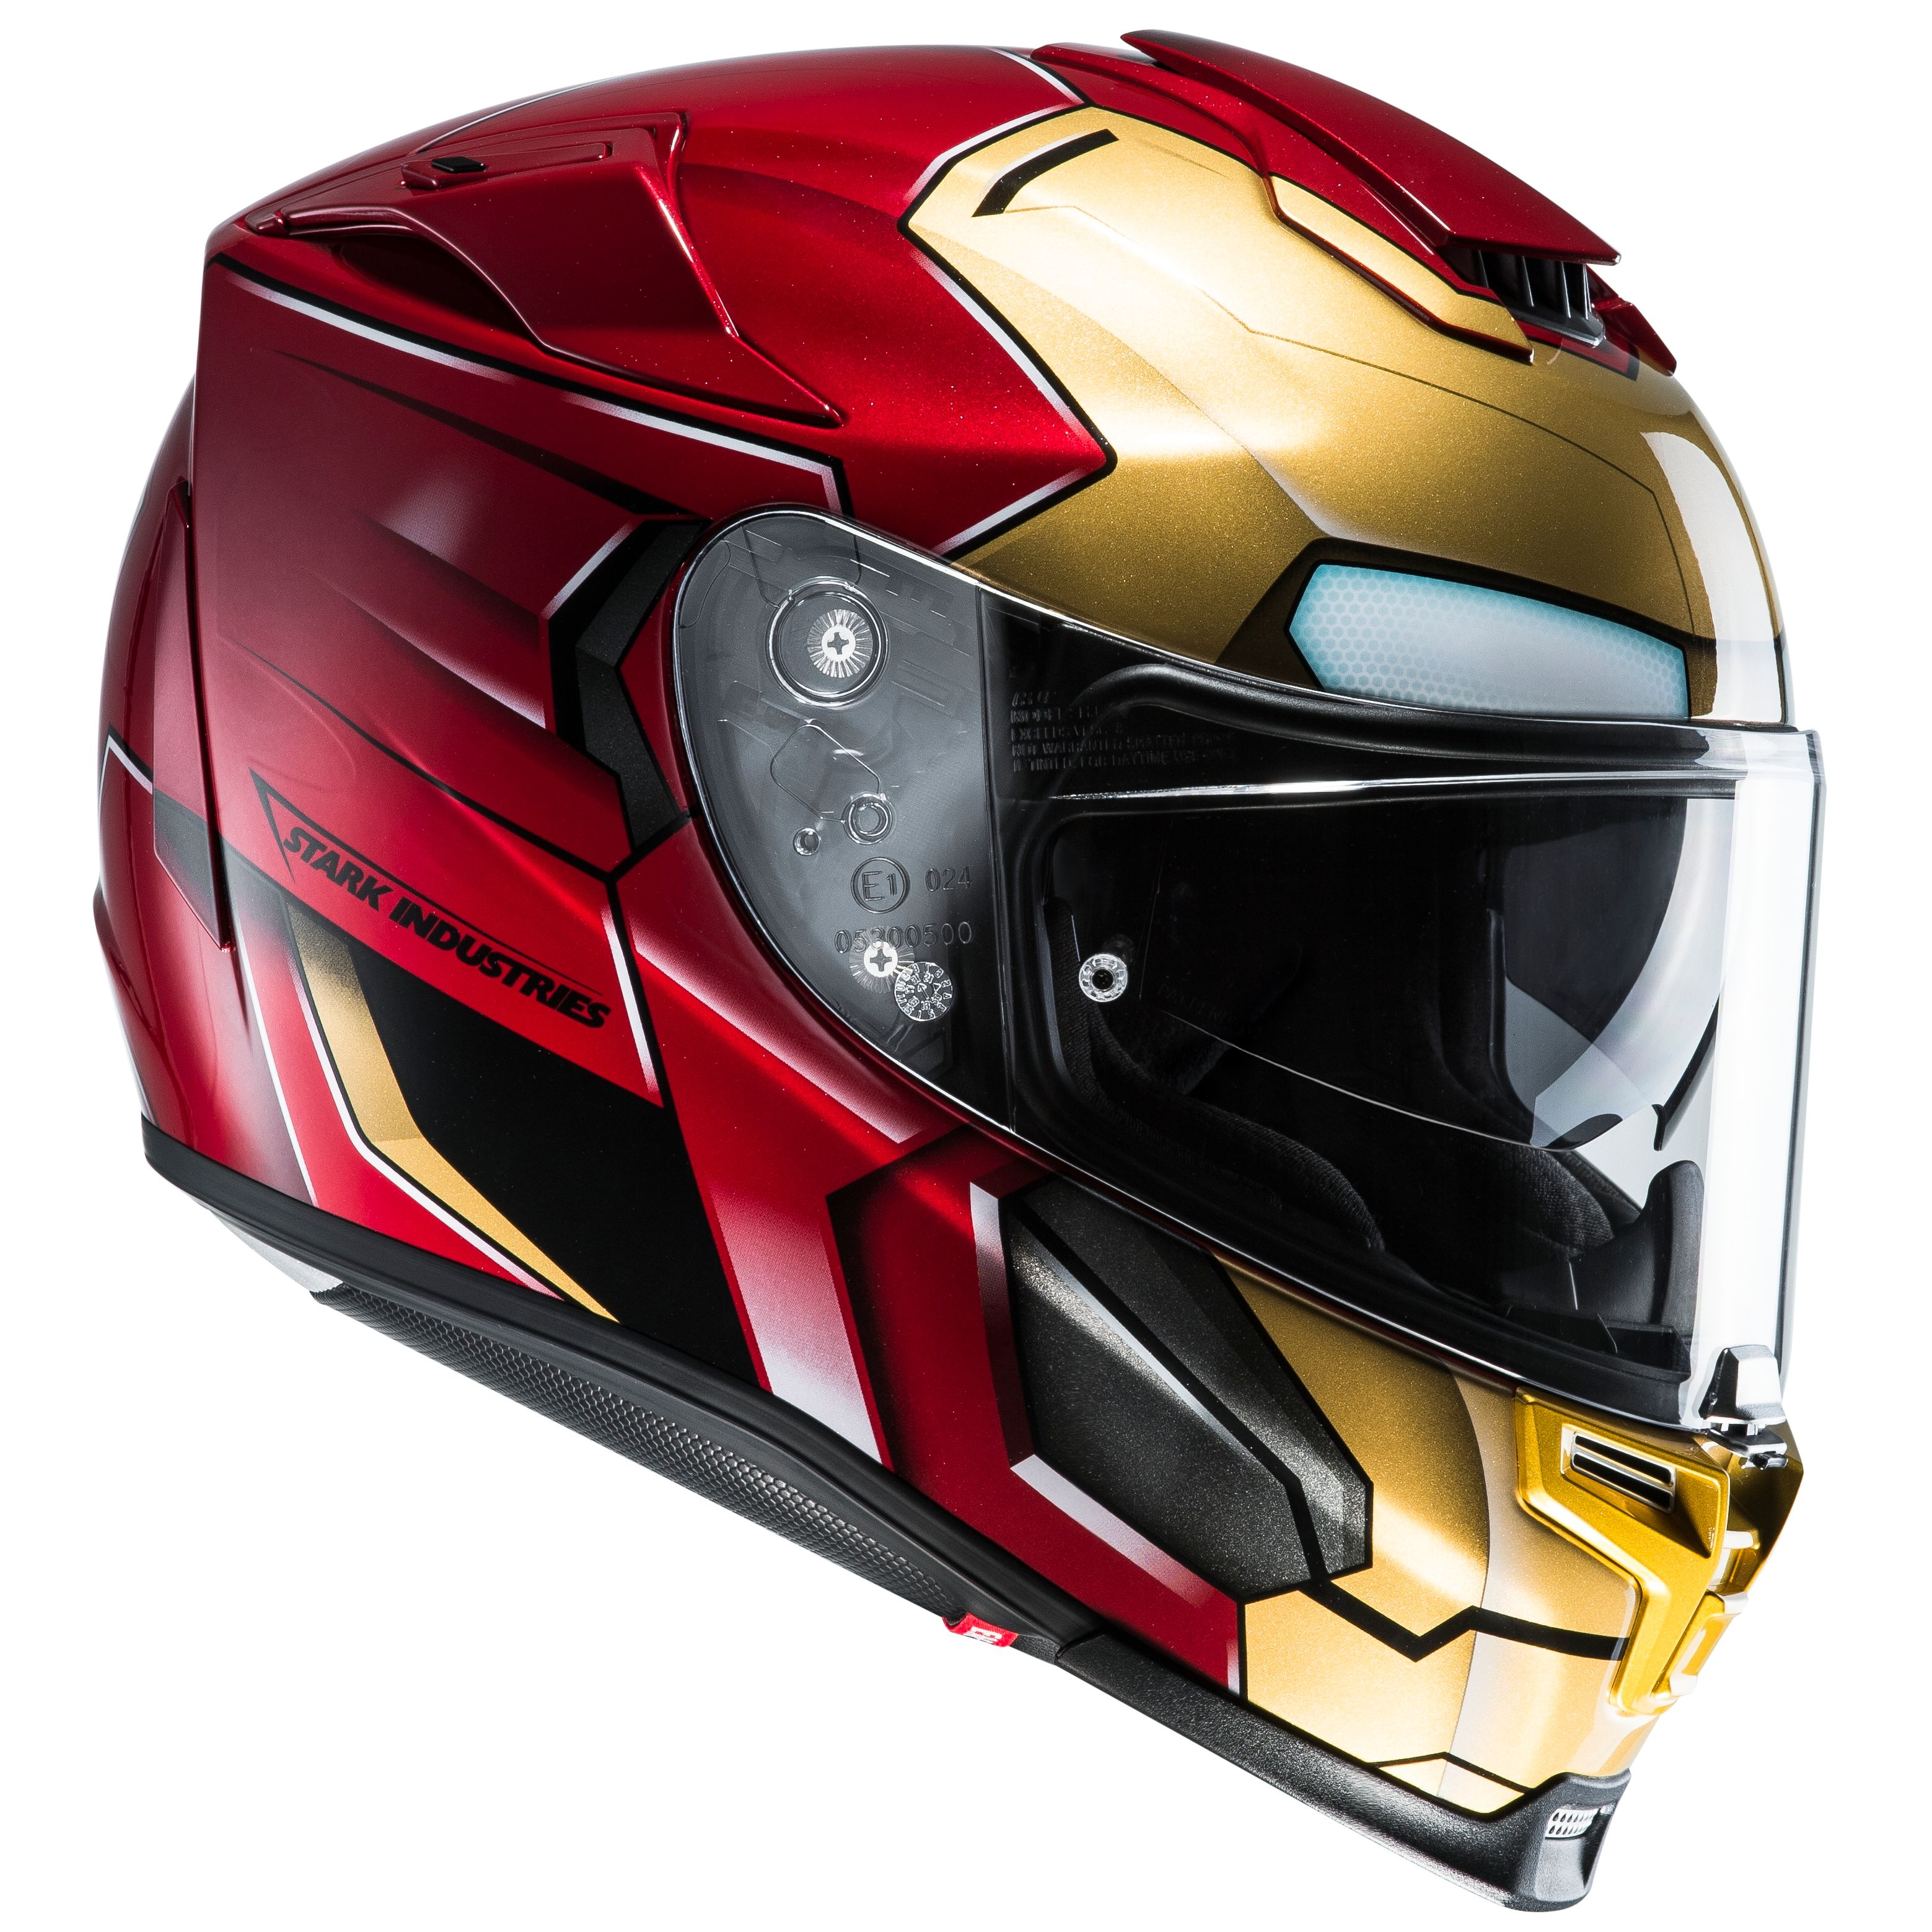 HJC-casque-rpha-70-iron-man-homecoming-marvel-image-10647201